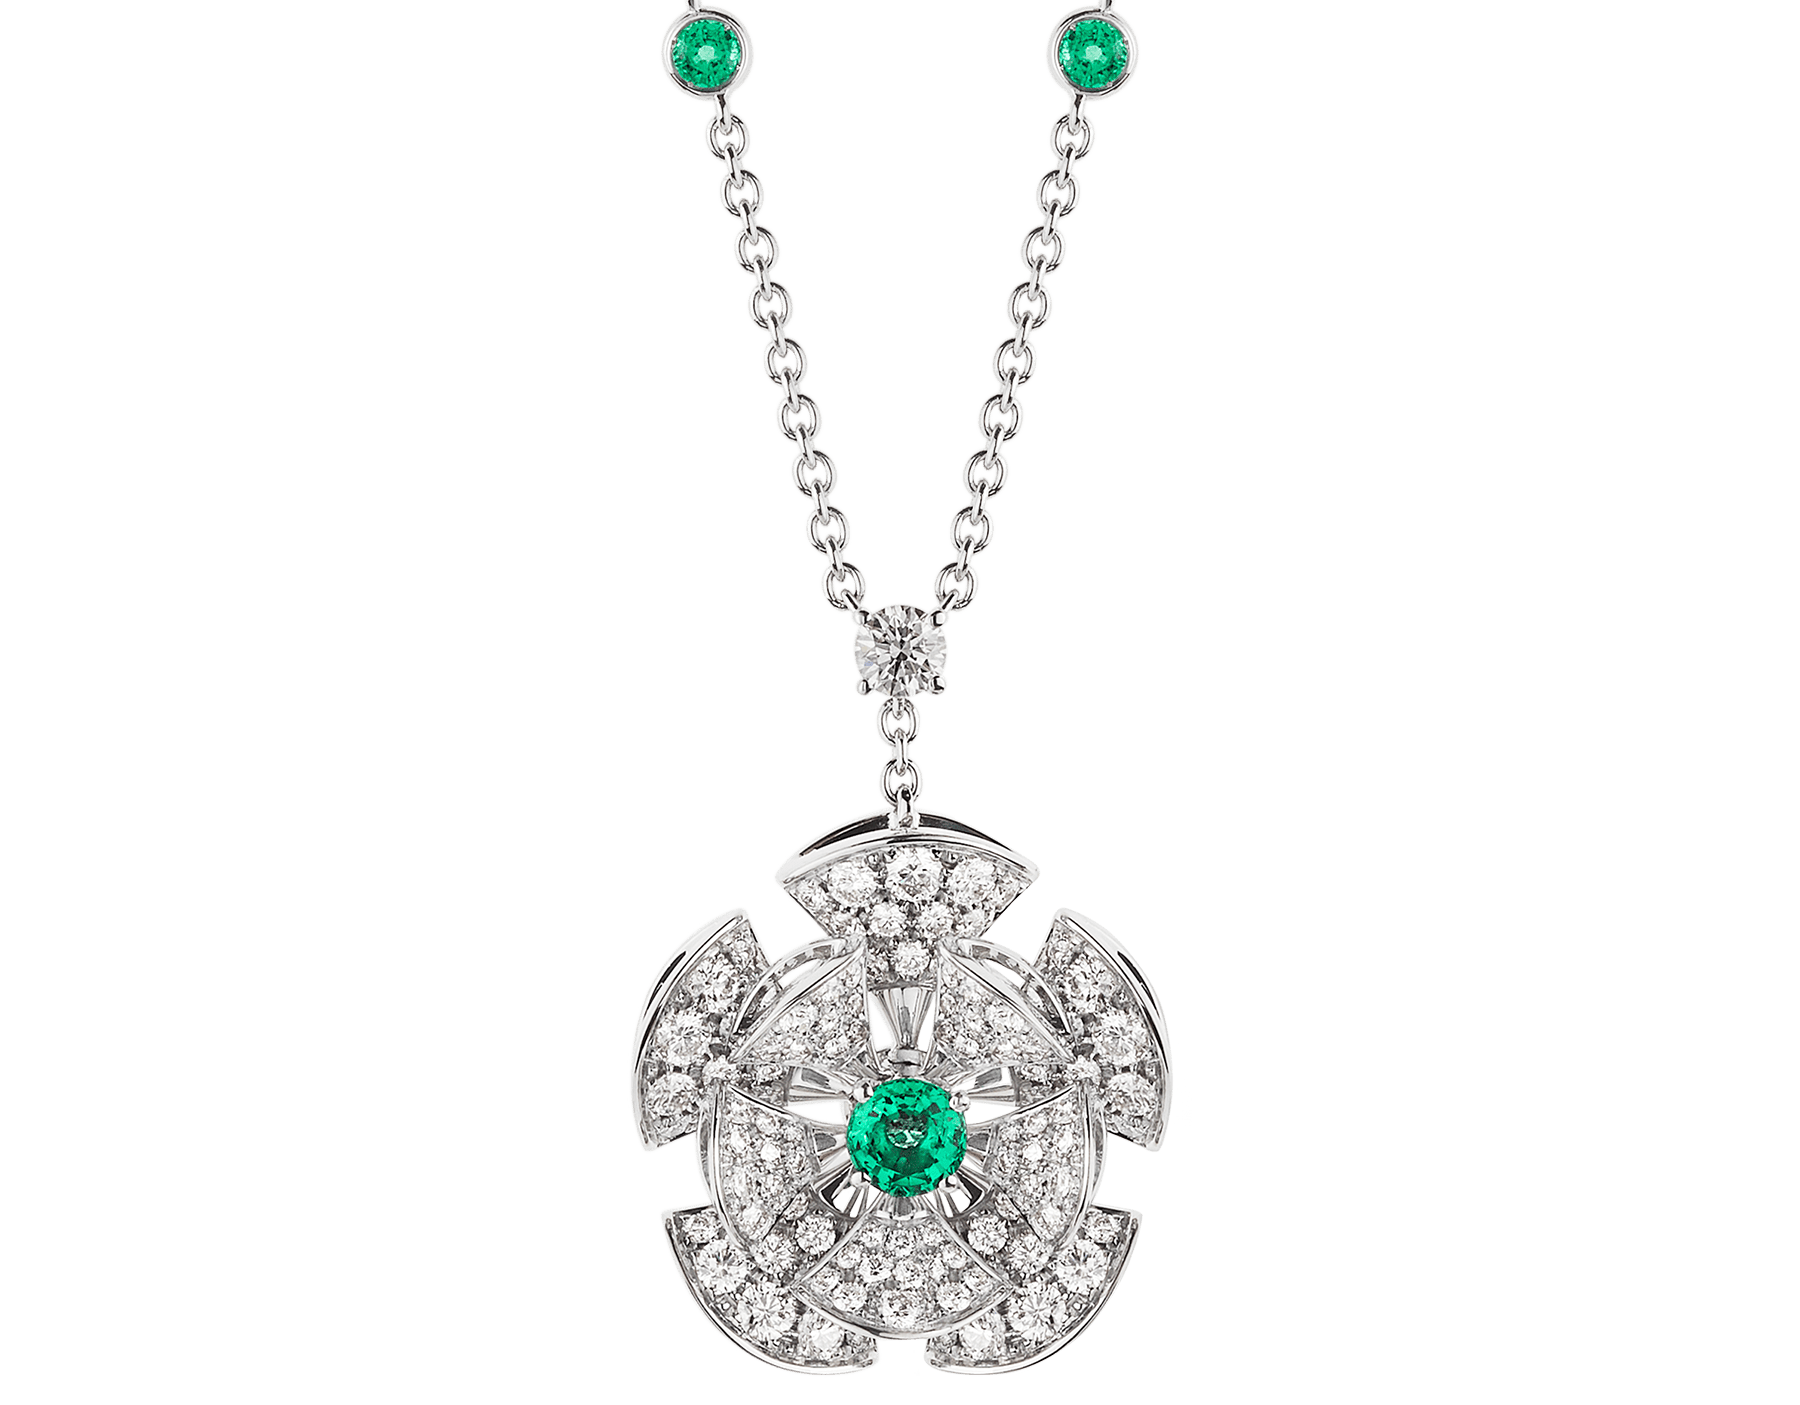 DIVAS' DREAM necklace in 18 kt white gold with chain set with emeralds and a diamond, and with a pendant set with a central enerald and pavé diamonds. 352626 image 1